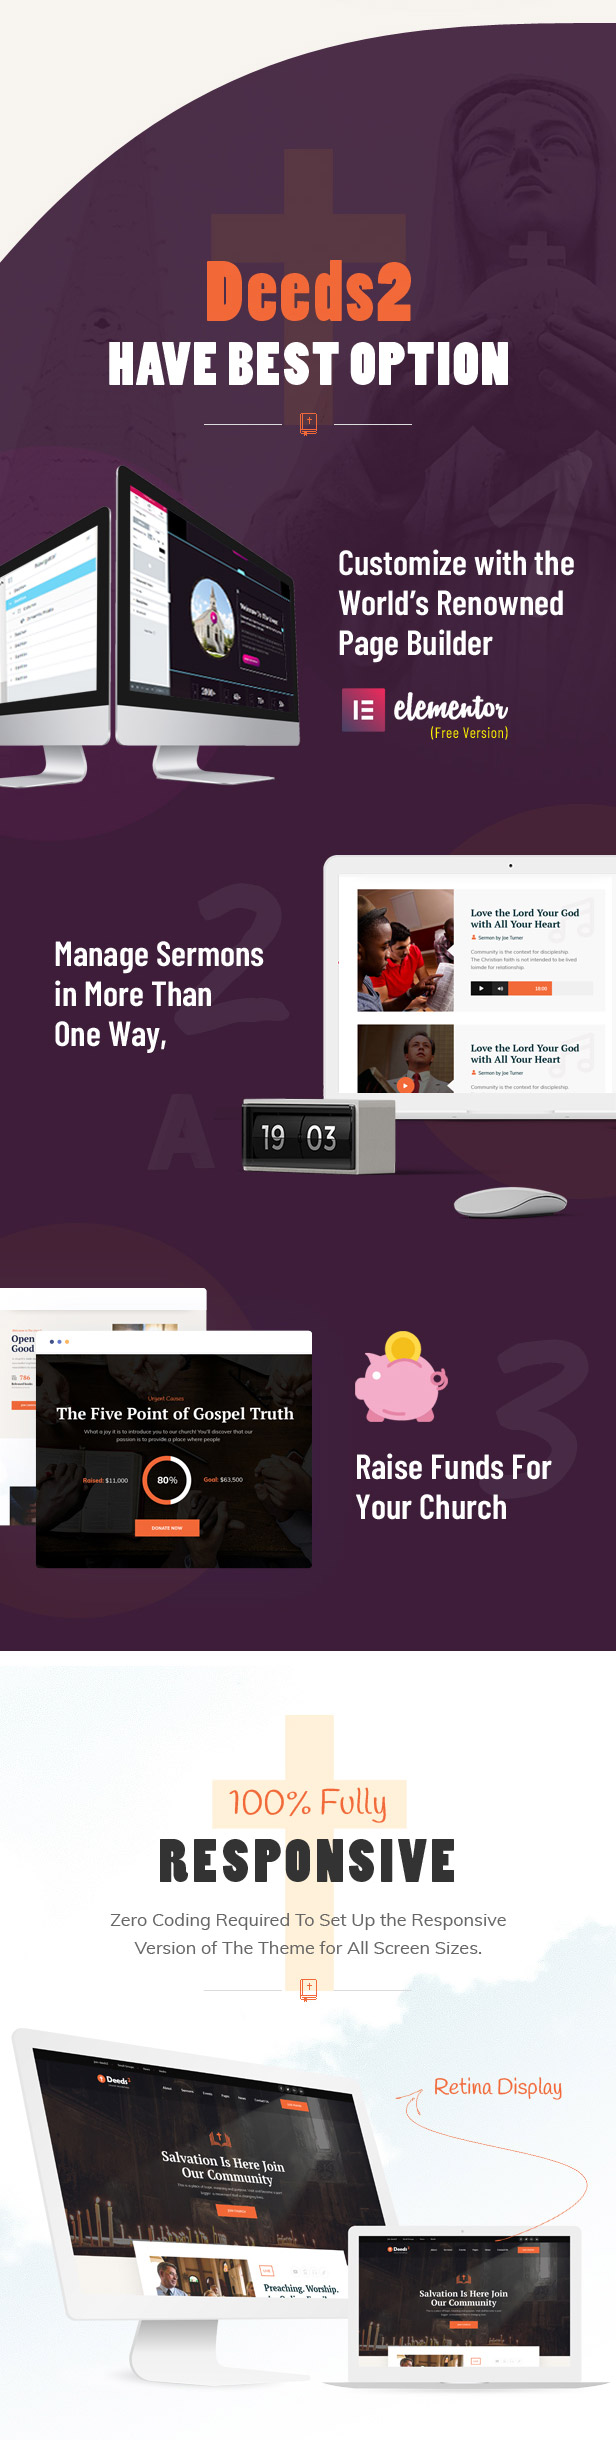 Deeds2 - Religion and Church WordPress Theme - 4